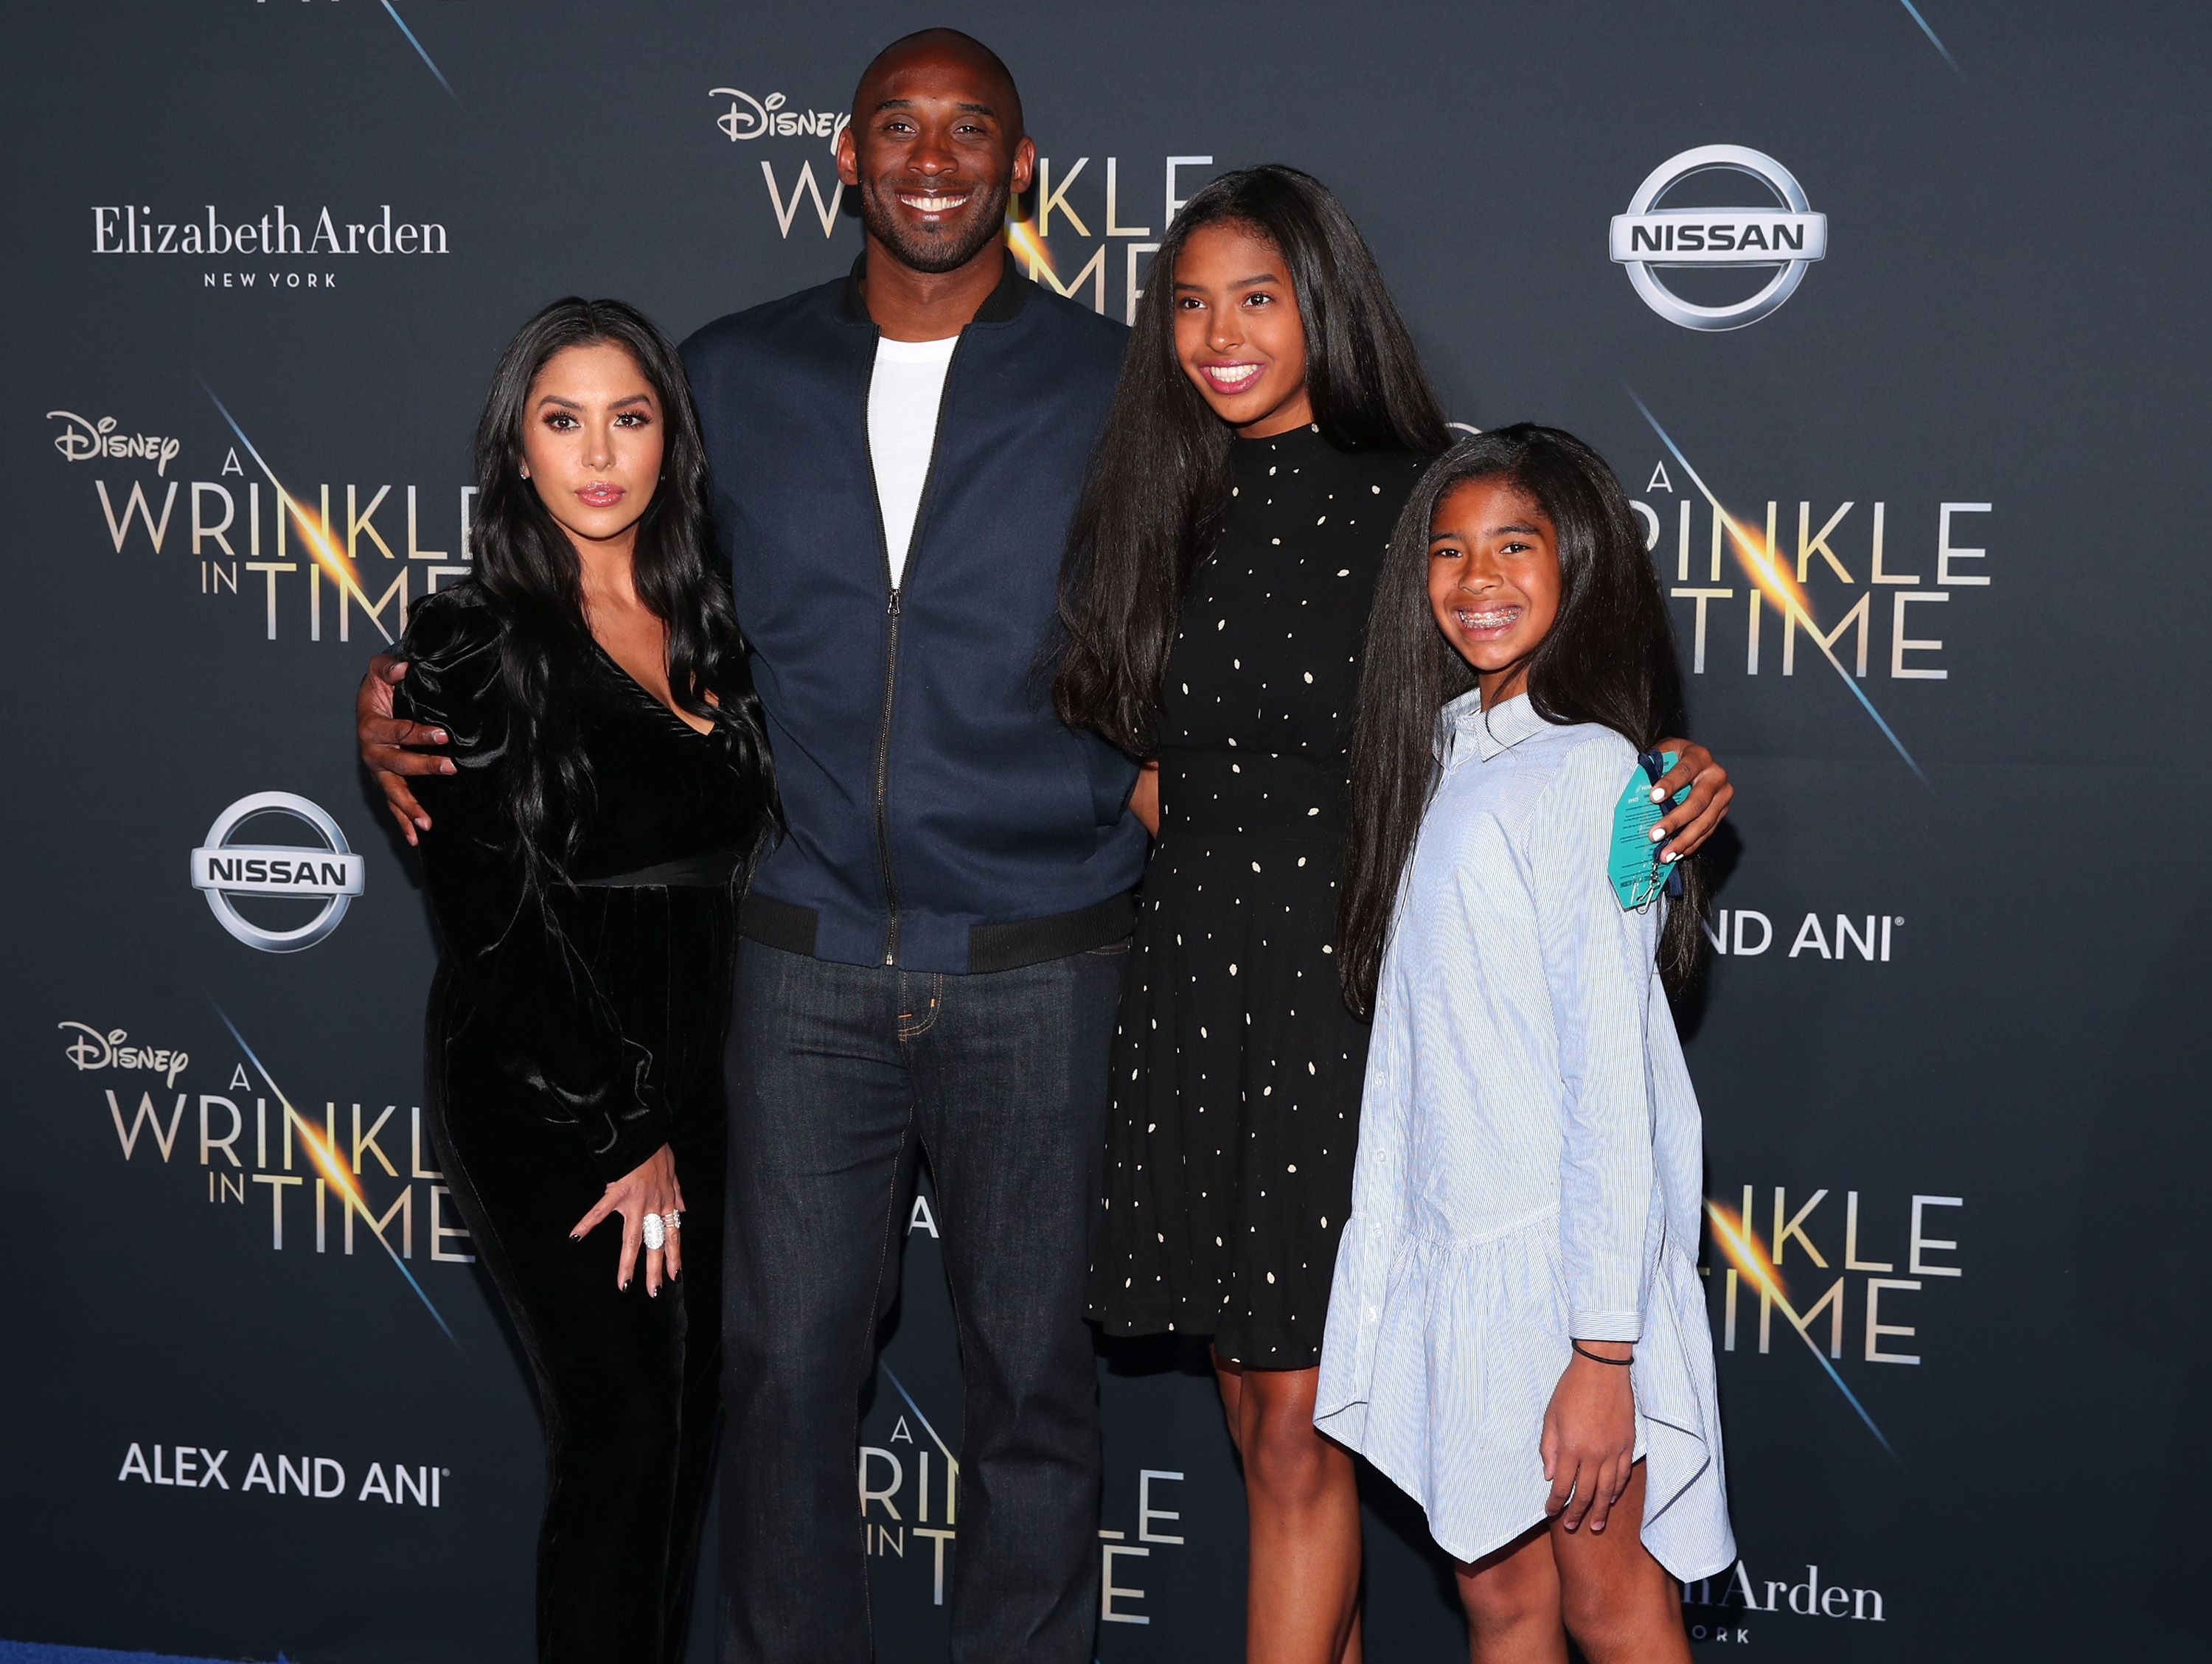 """Vanessa and Kobe Bryant and their children attend the premiere of """"A Wrinkle In Time"""" on February 26, 2018, in Los Angeles, California. 